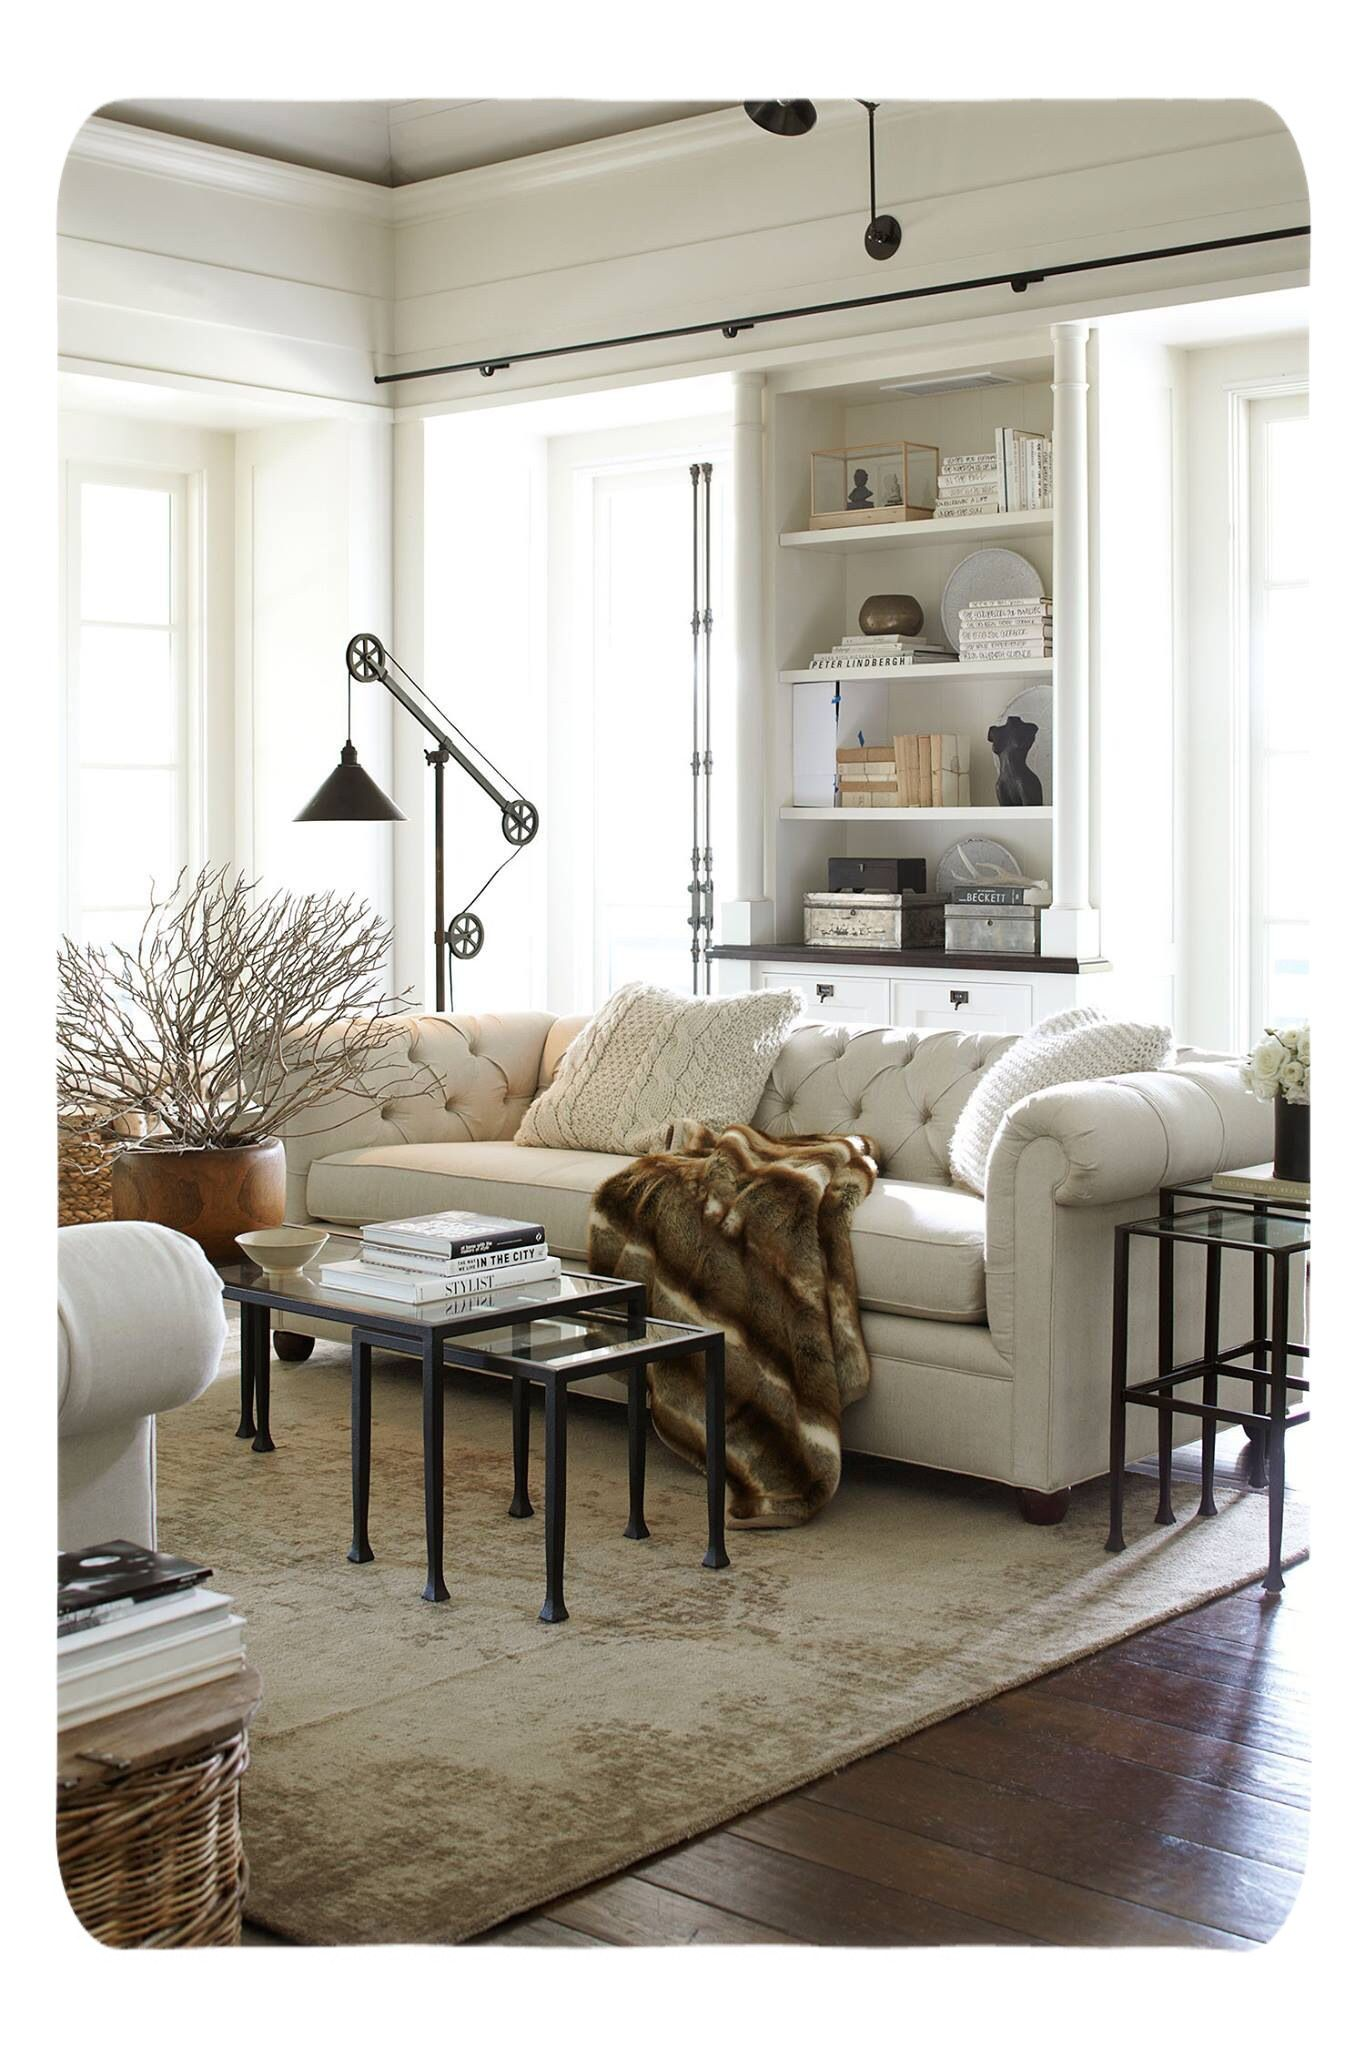 Living Room Decor Be More Excited By Styles And Designs,